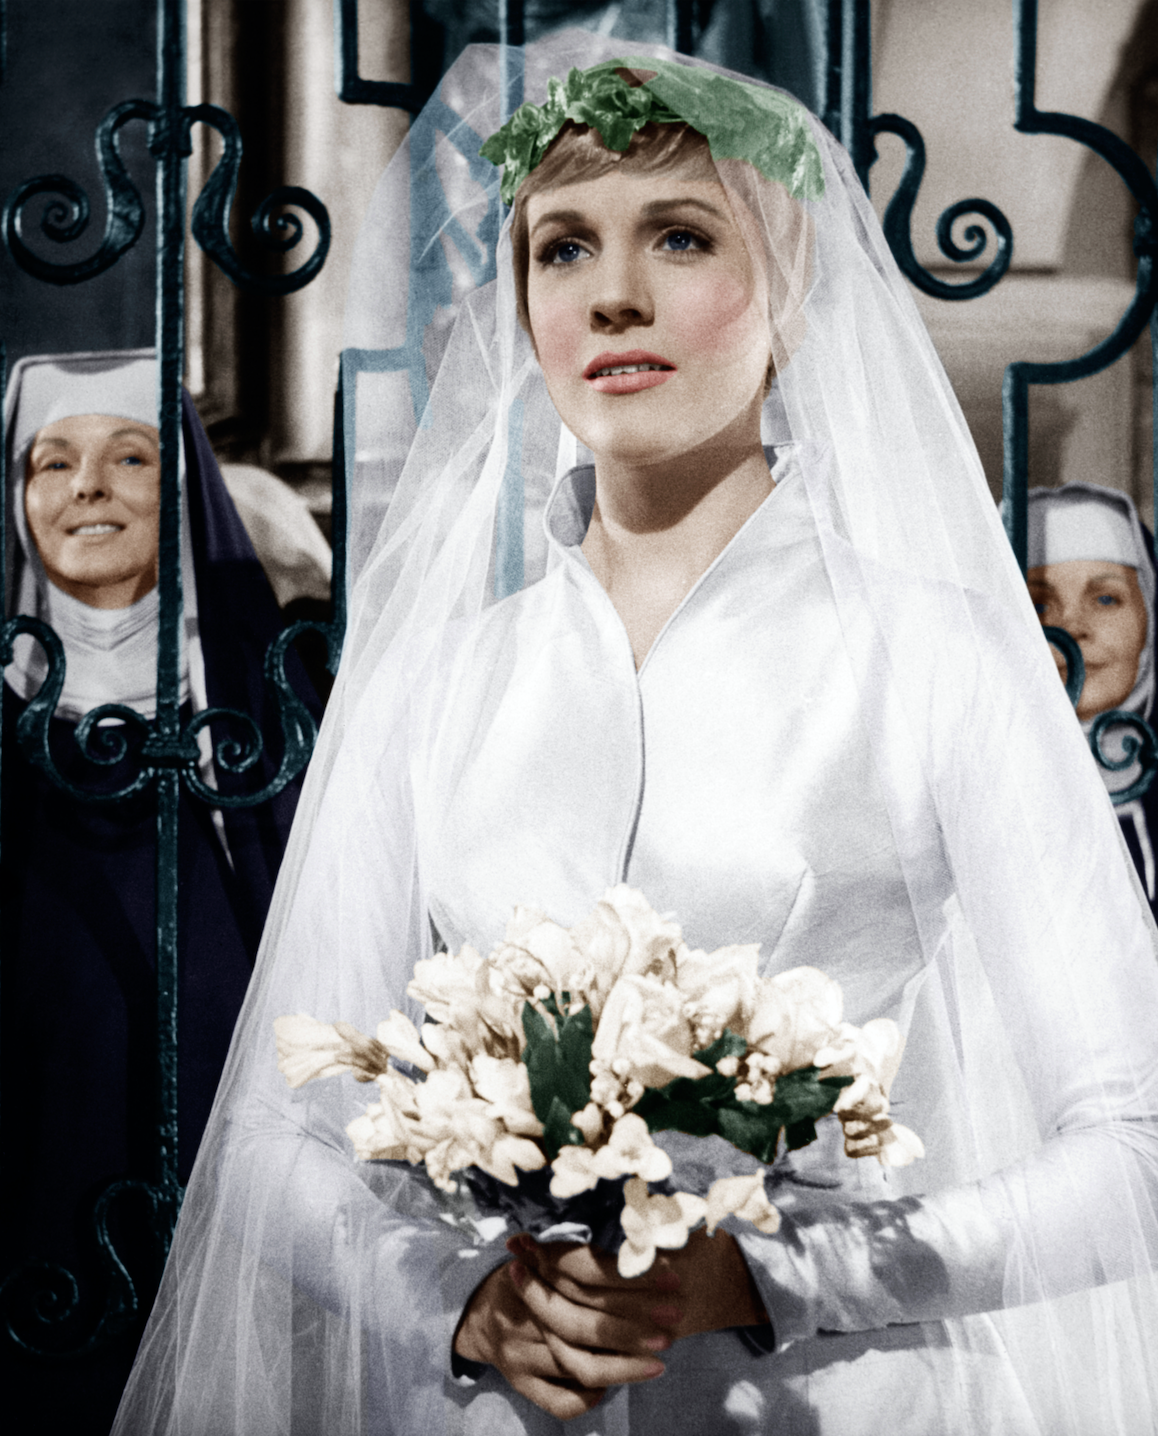 Maria looking elegant with her long veil